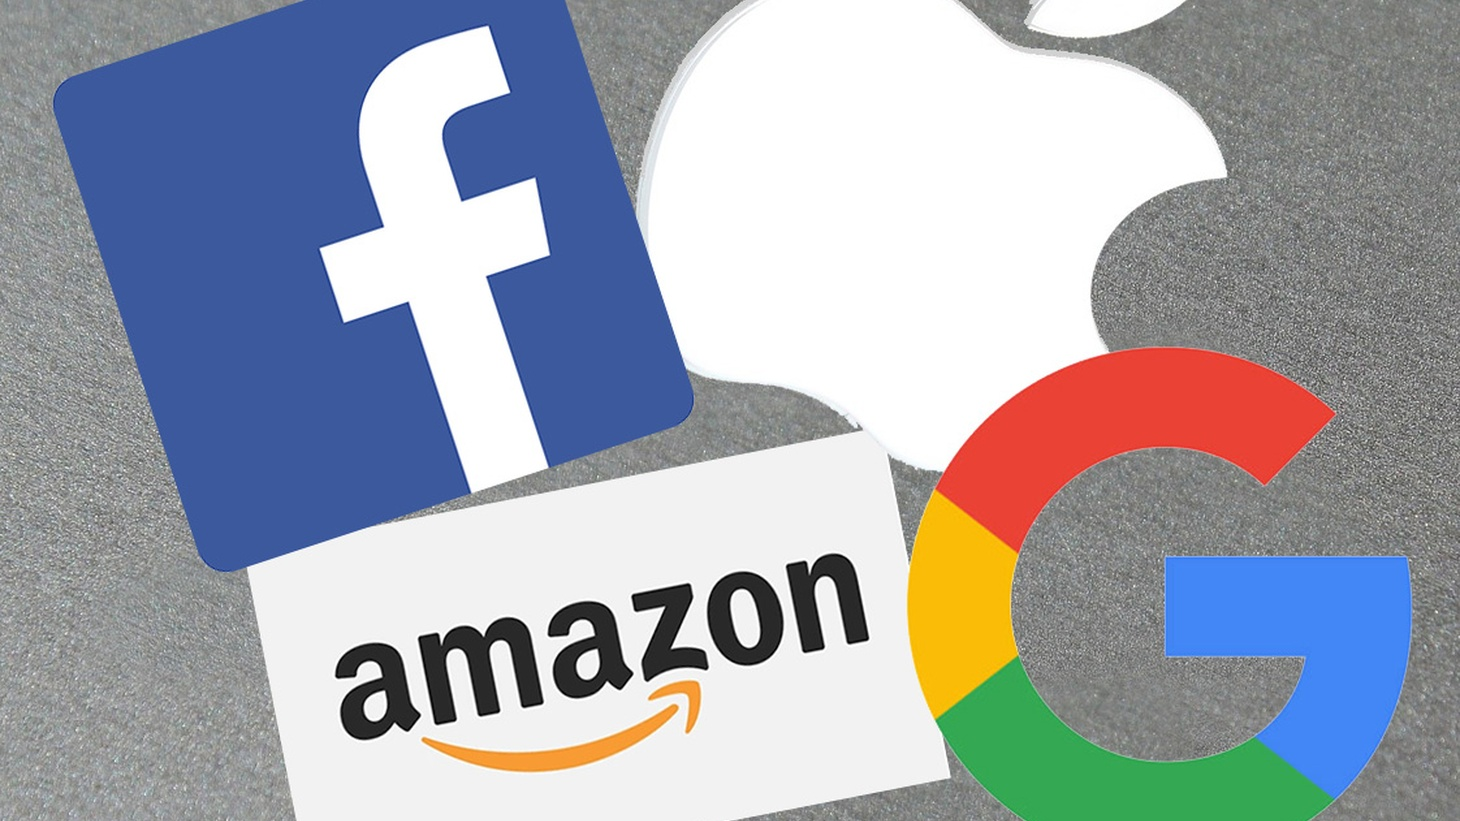 In Washington, progressives and conservatives are alarmed by the power of Silicon Valley — suggesting that Facebook, Google, Apple and Amazon are monopolies in need of regulation. We look at the pros and cons — and the political realities.